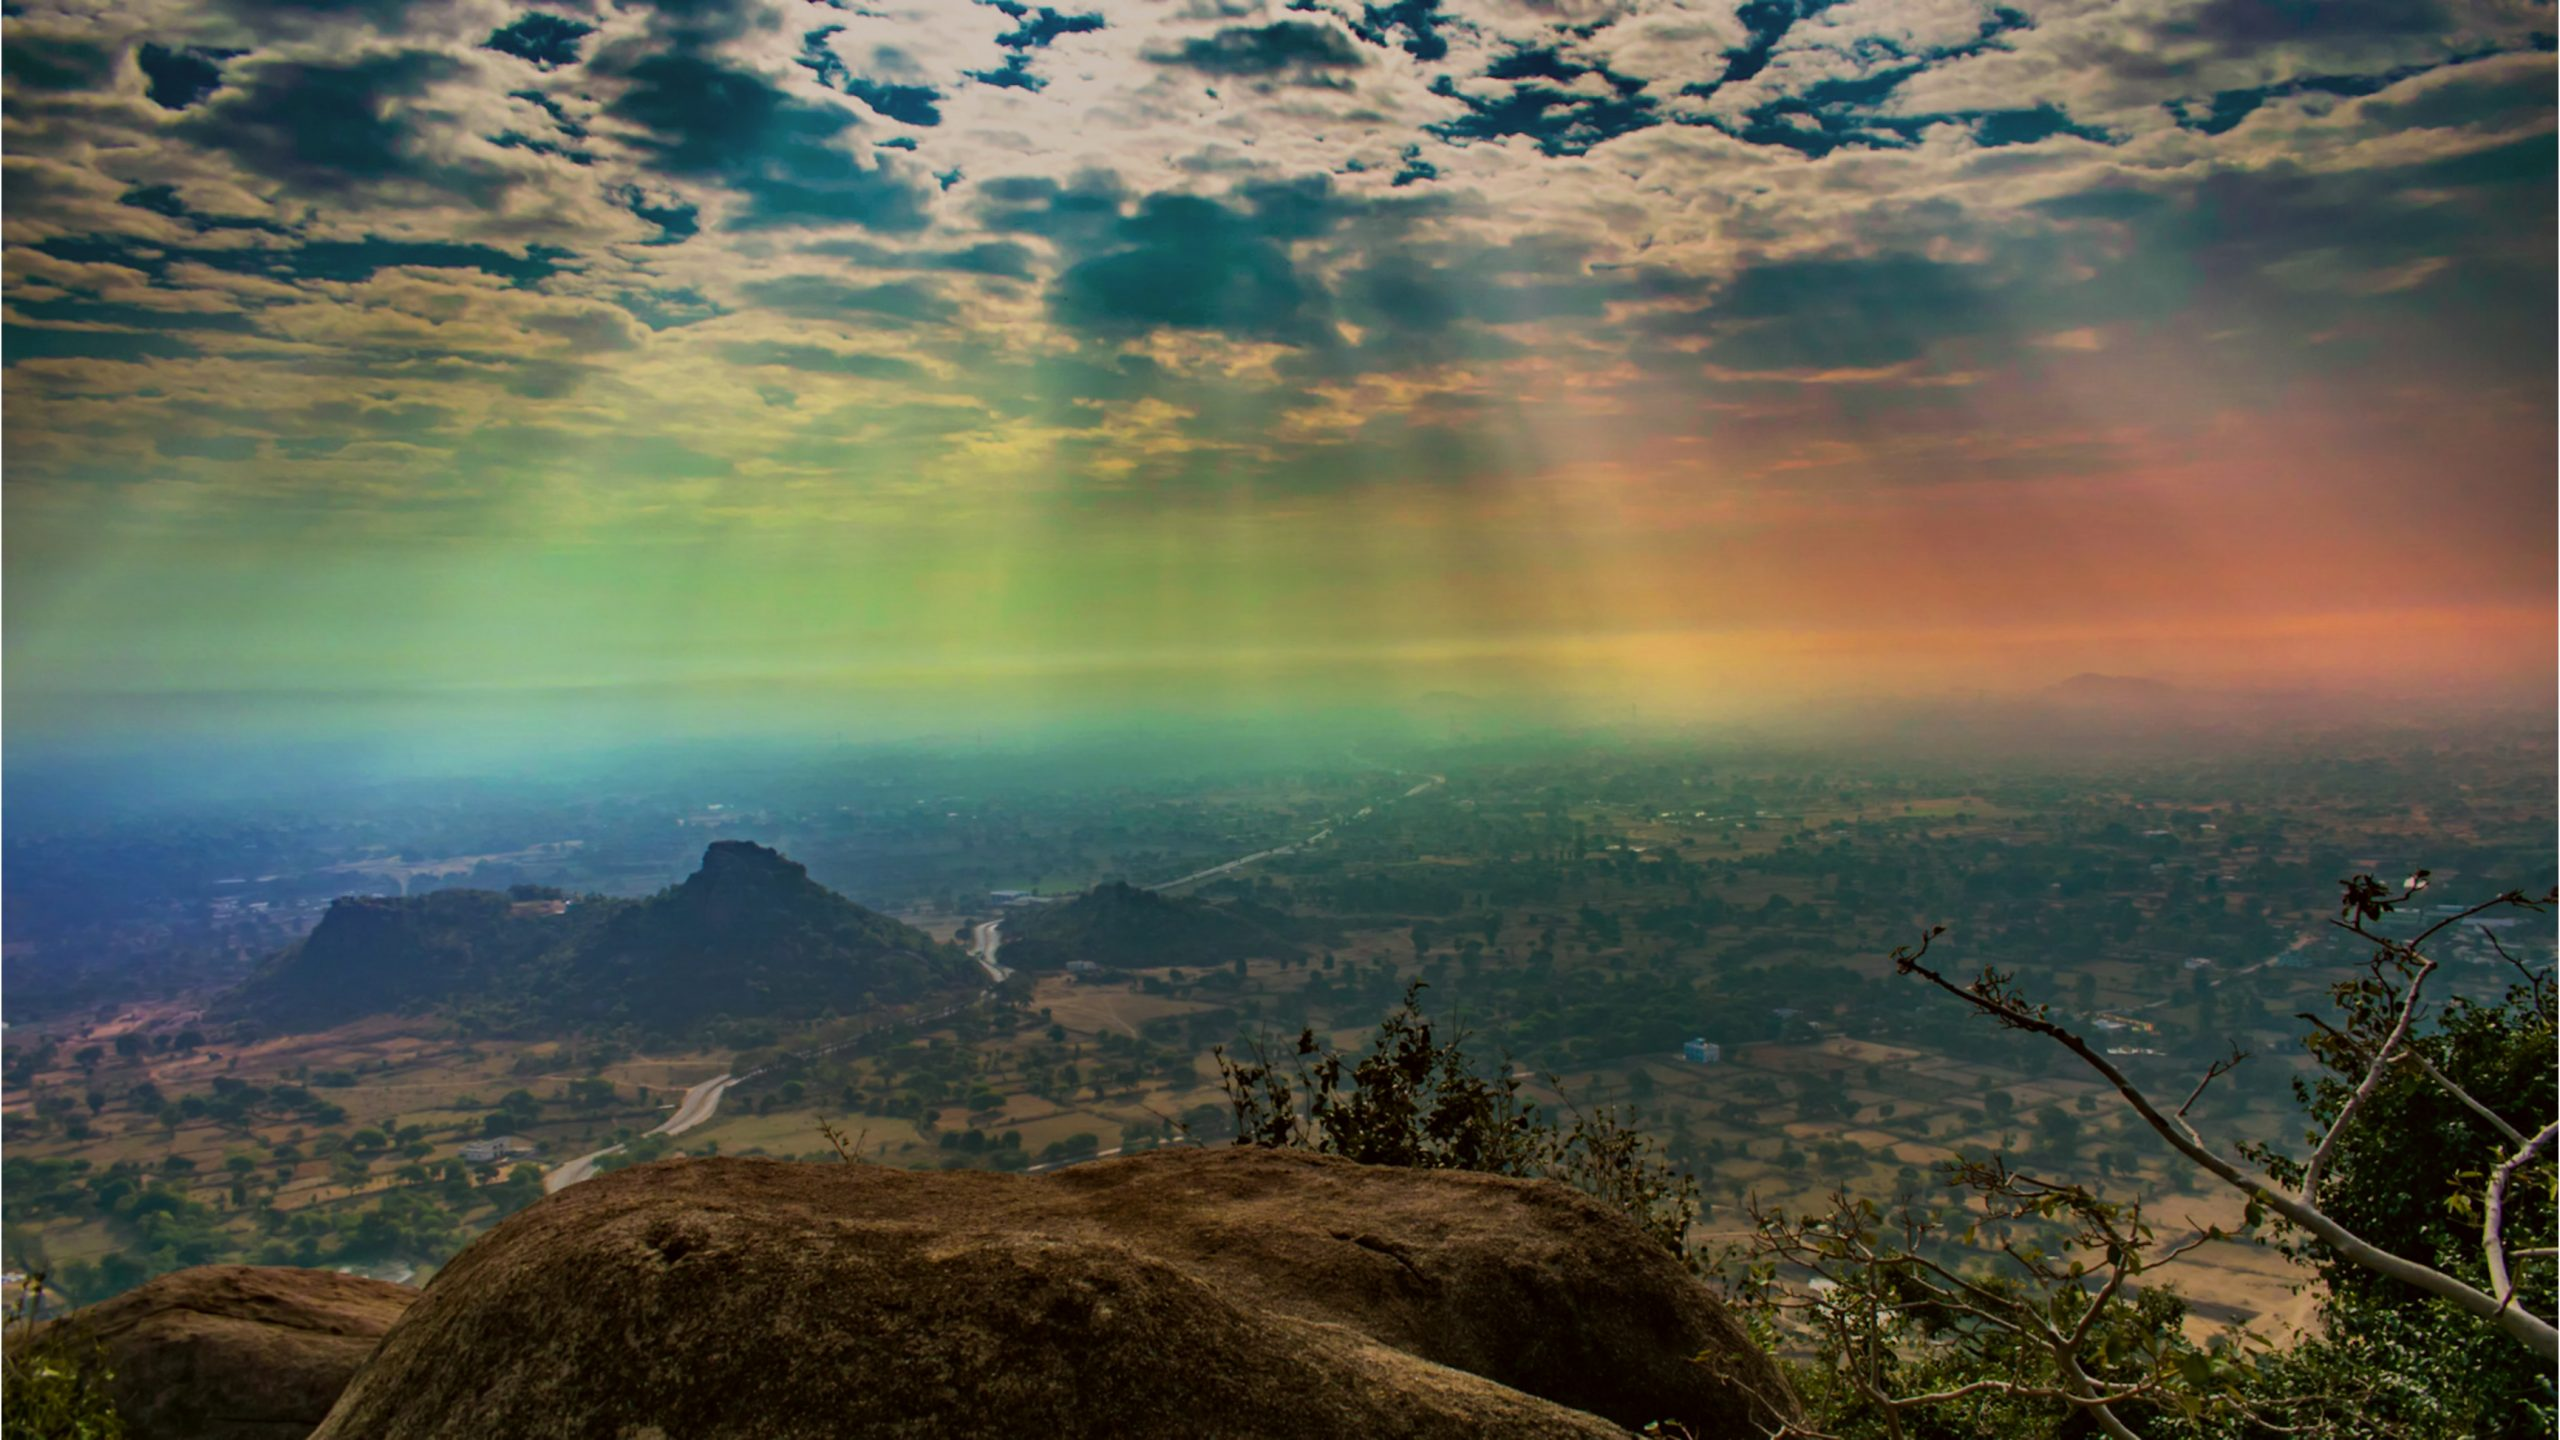 Landscape of a colorful rays of the city